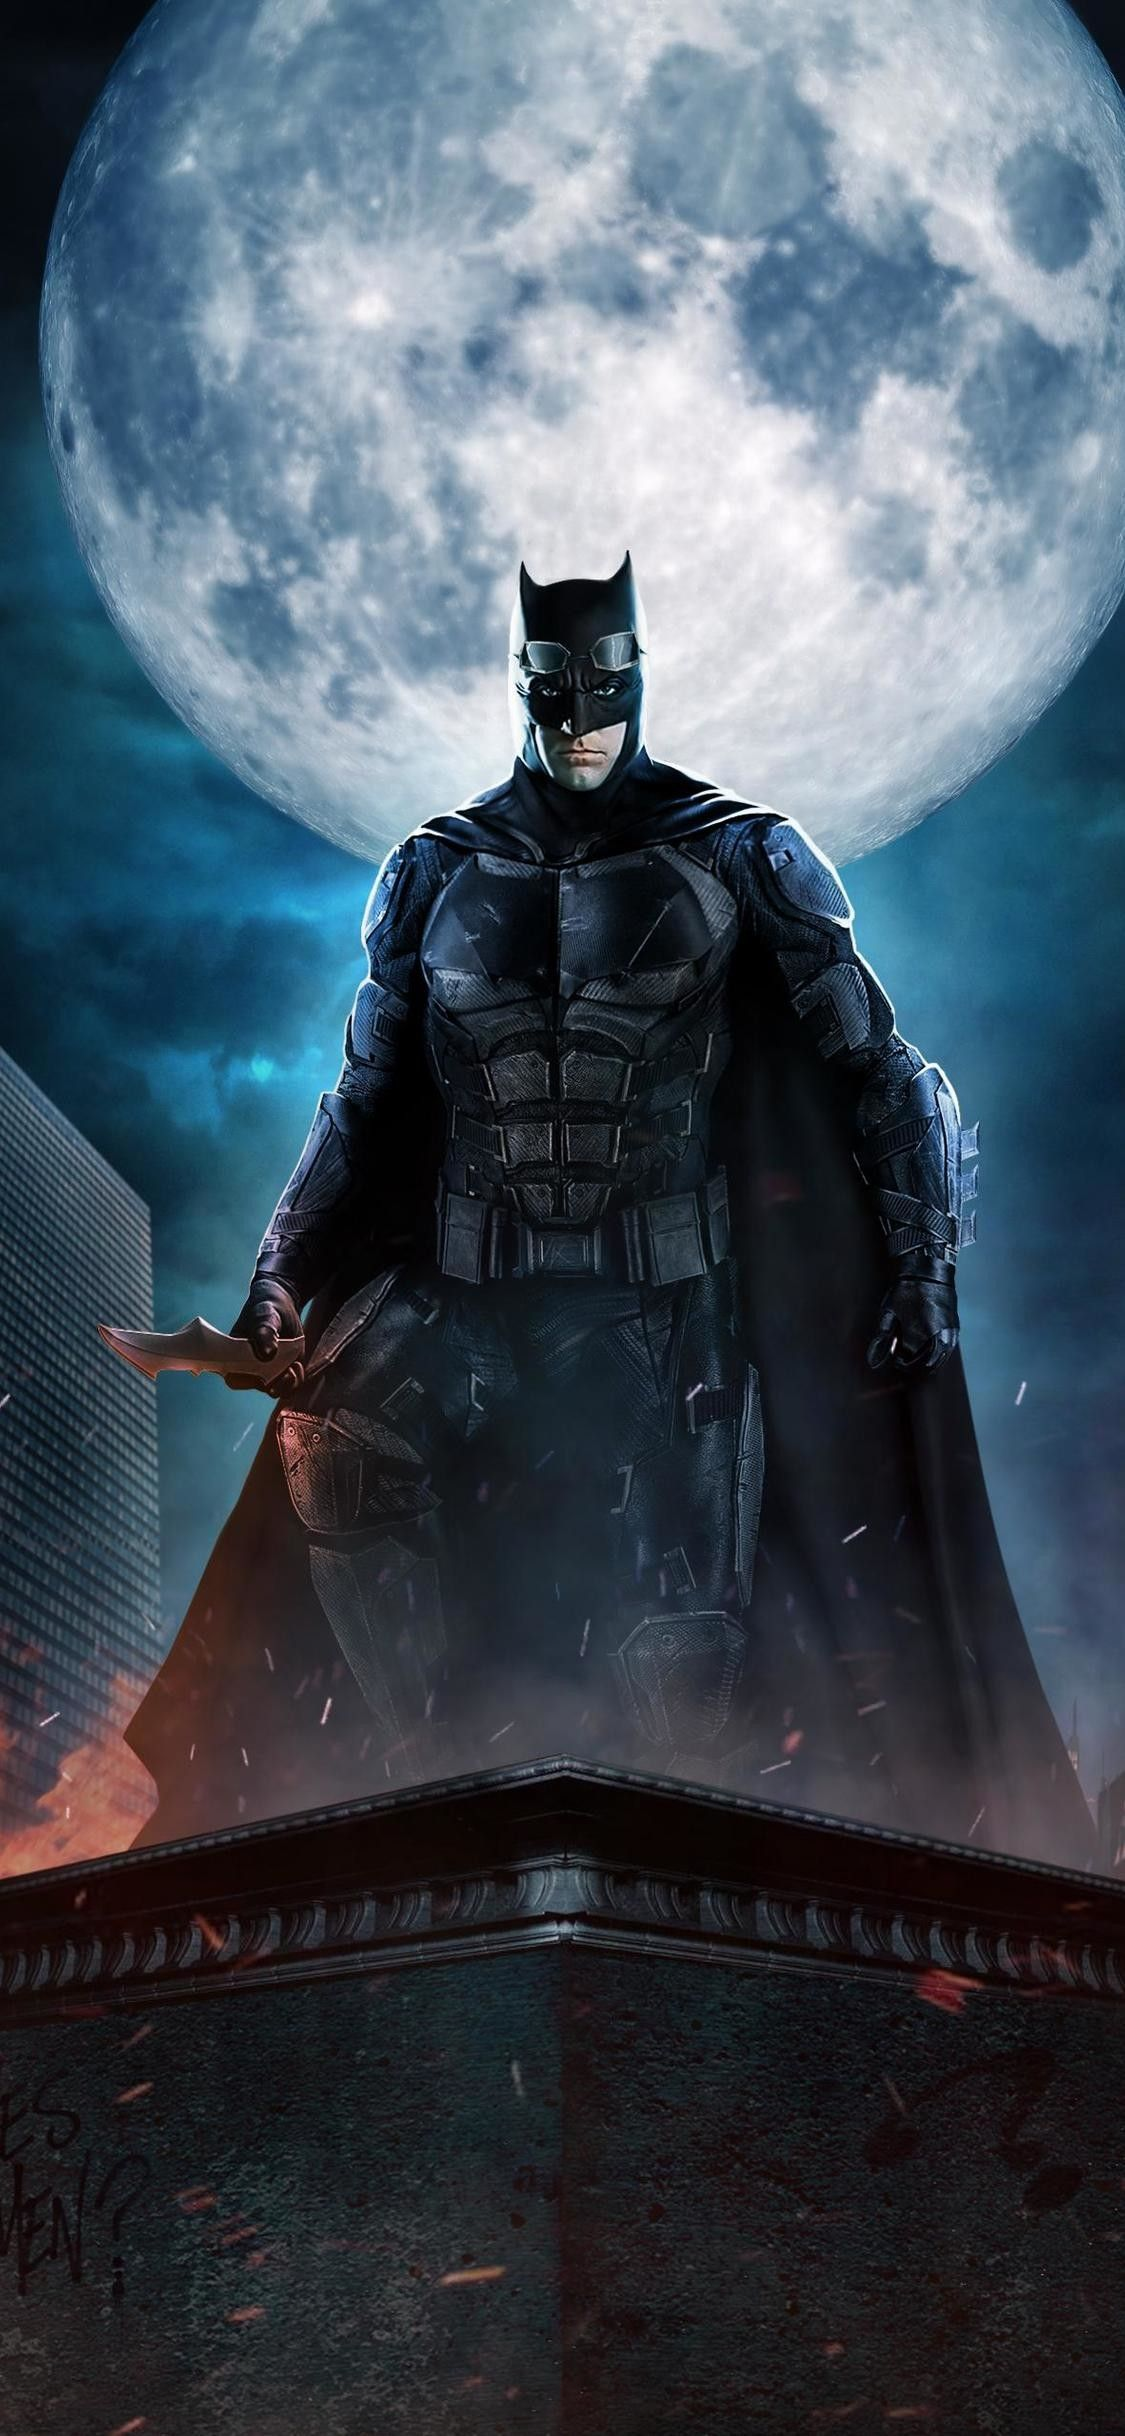 Justice League Wallpaper Iphone Batman Batman Wallpaper Batman Wallpaper Iphone